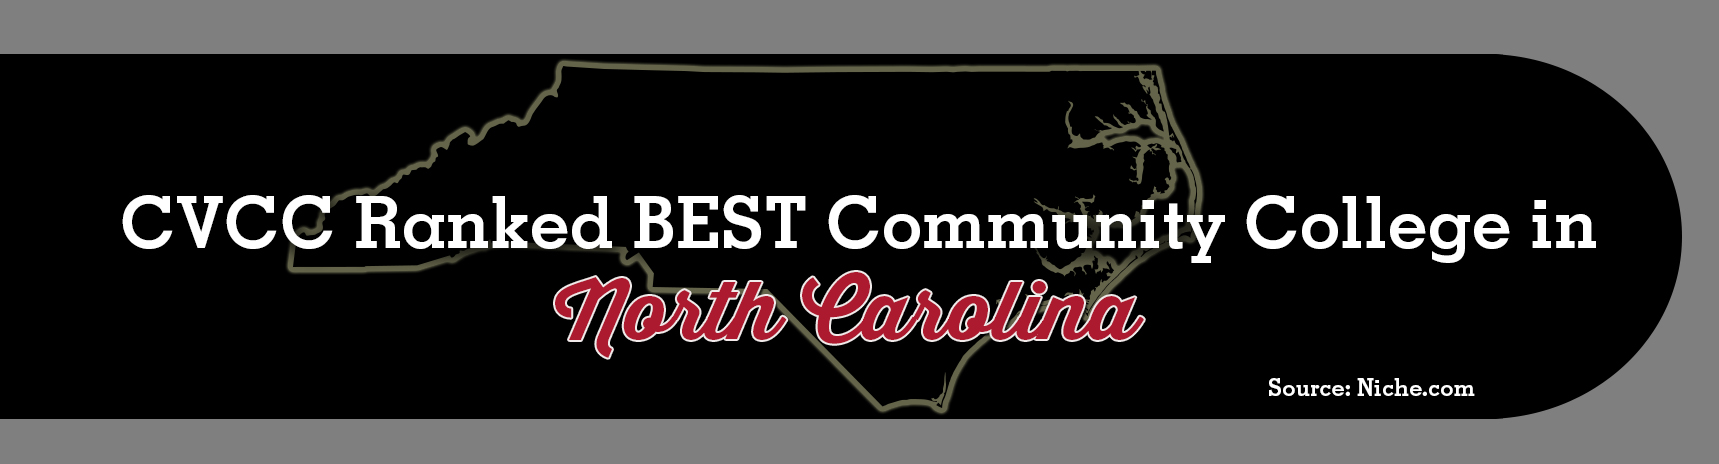 CVCC Best Community College North Carolina